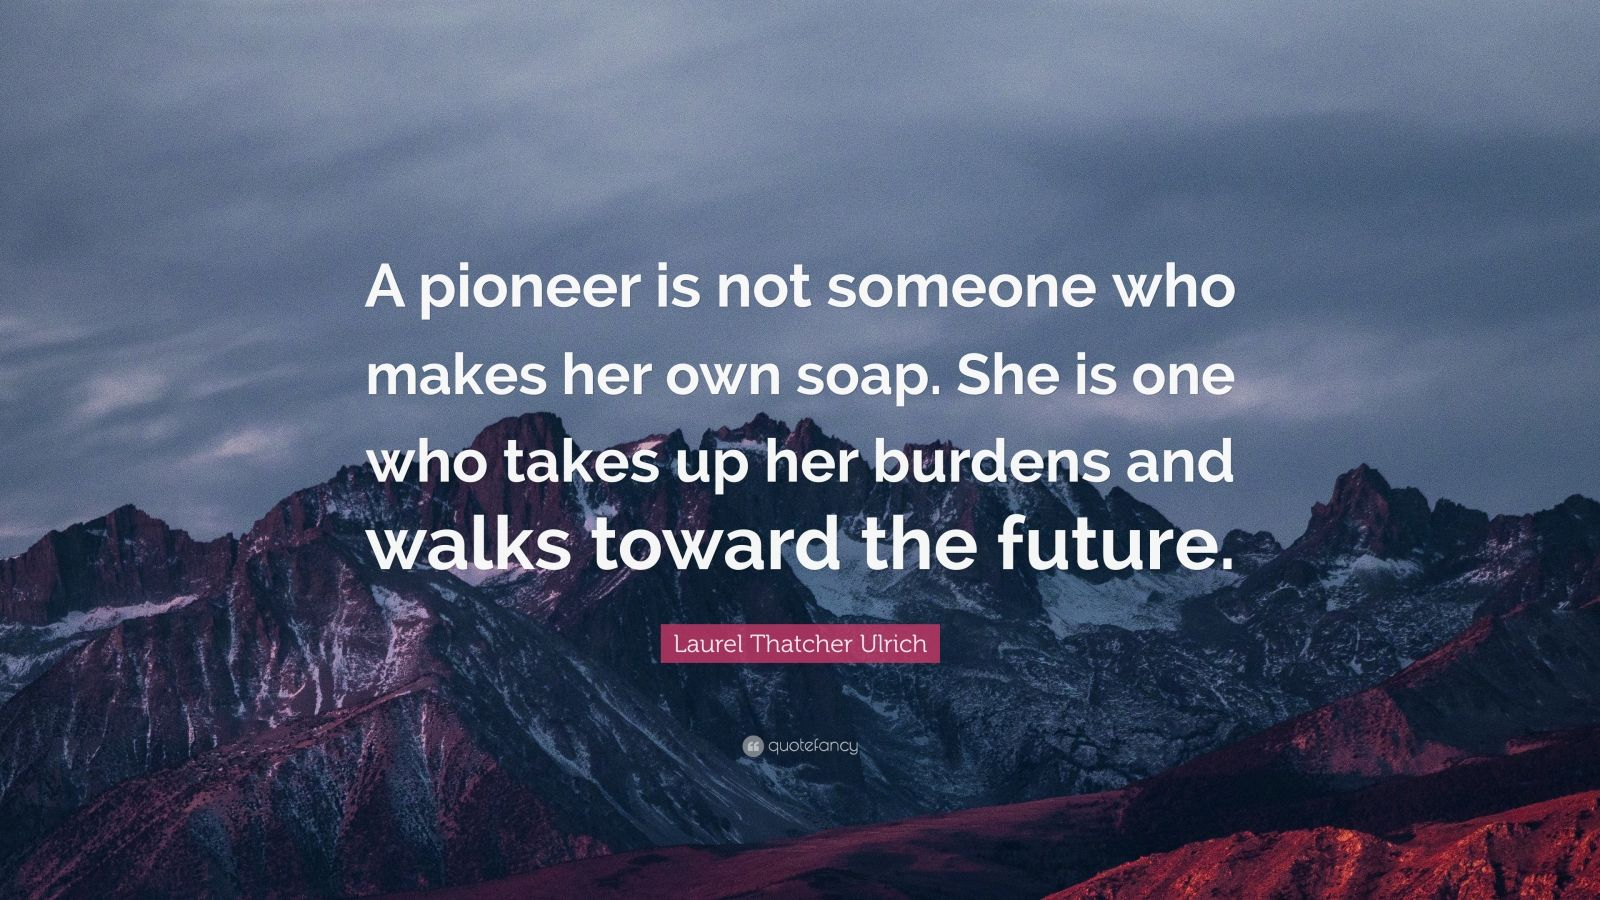 """Laurel Thatcher Ulrich Quote: """"A pioneer is not someone who makes her own soap. She is one who takes up her burdens and walks toward the future."""""""